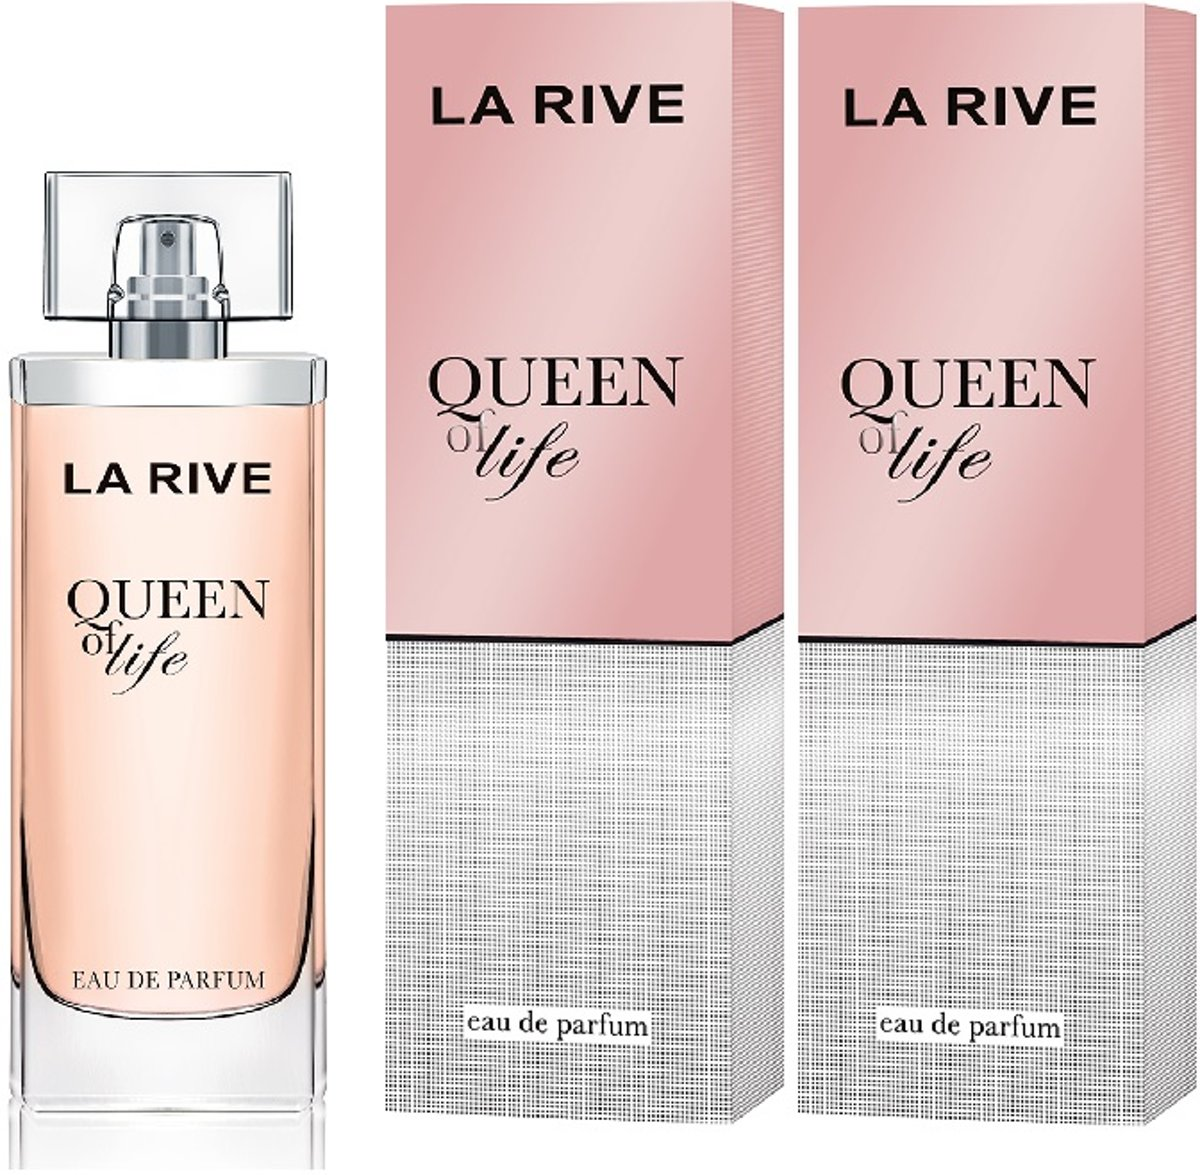 La Rive Multipack - 2x Queen of Life 75ml